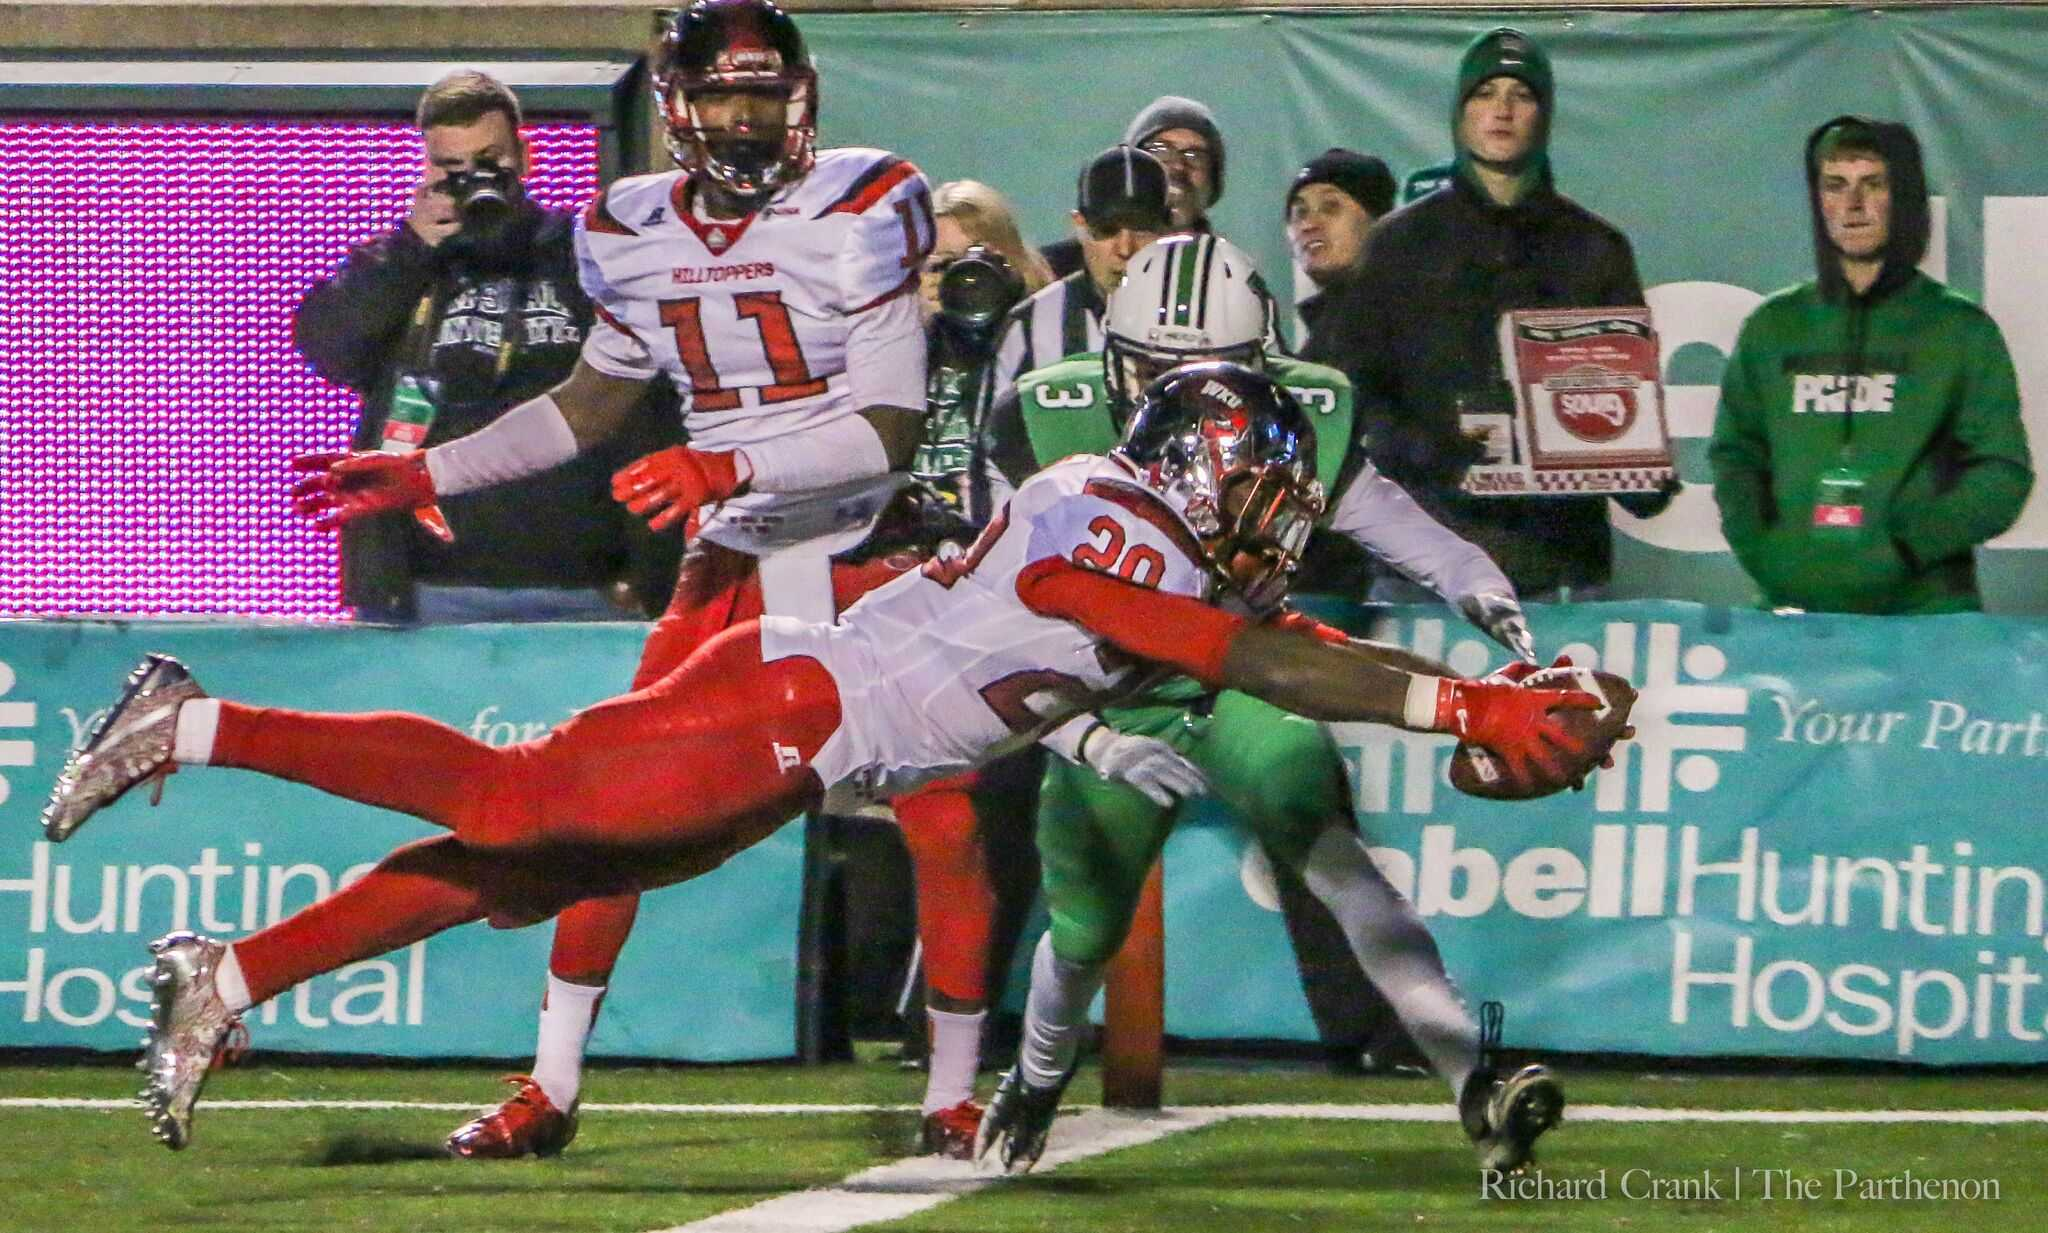 Western Kentucky running back Anthony Wales dives for the end zone in Saturday's lopsided 60-6 loss to the Hilltoppers. The loss is the worst home loss in Joan C. Edwards stadium history.